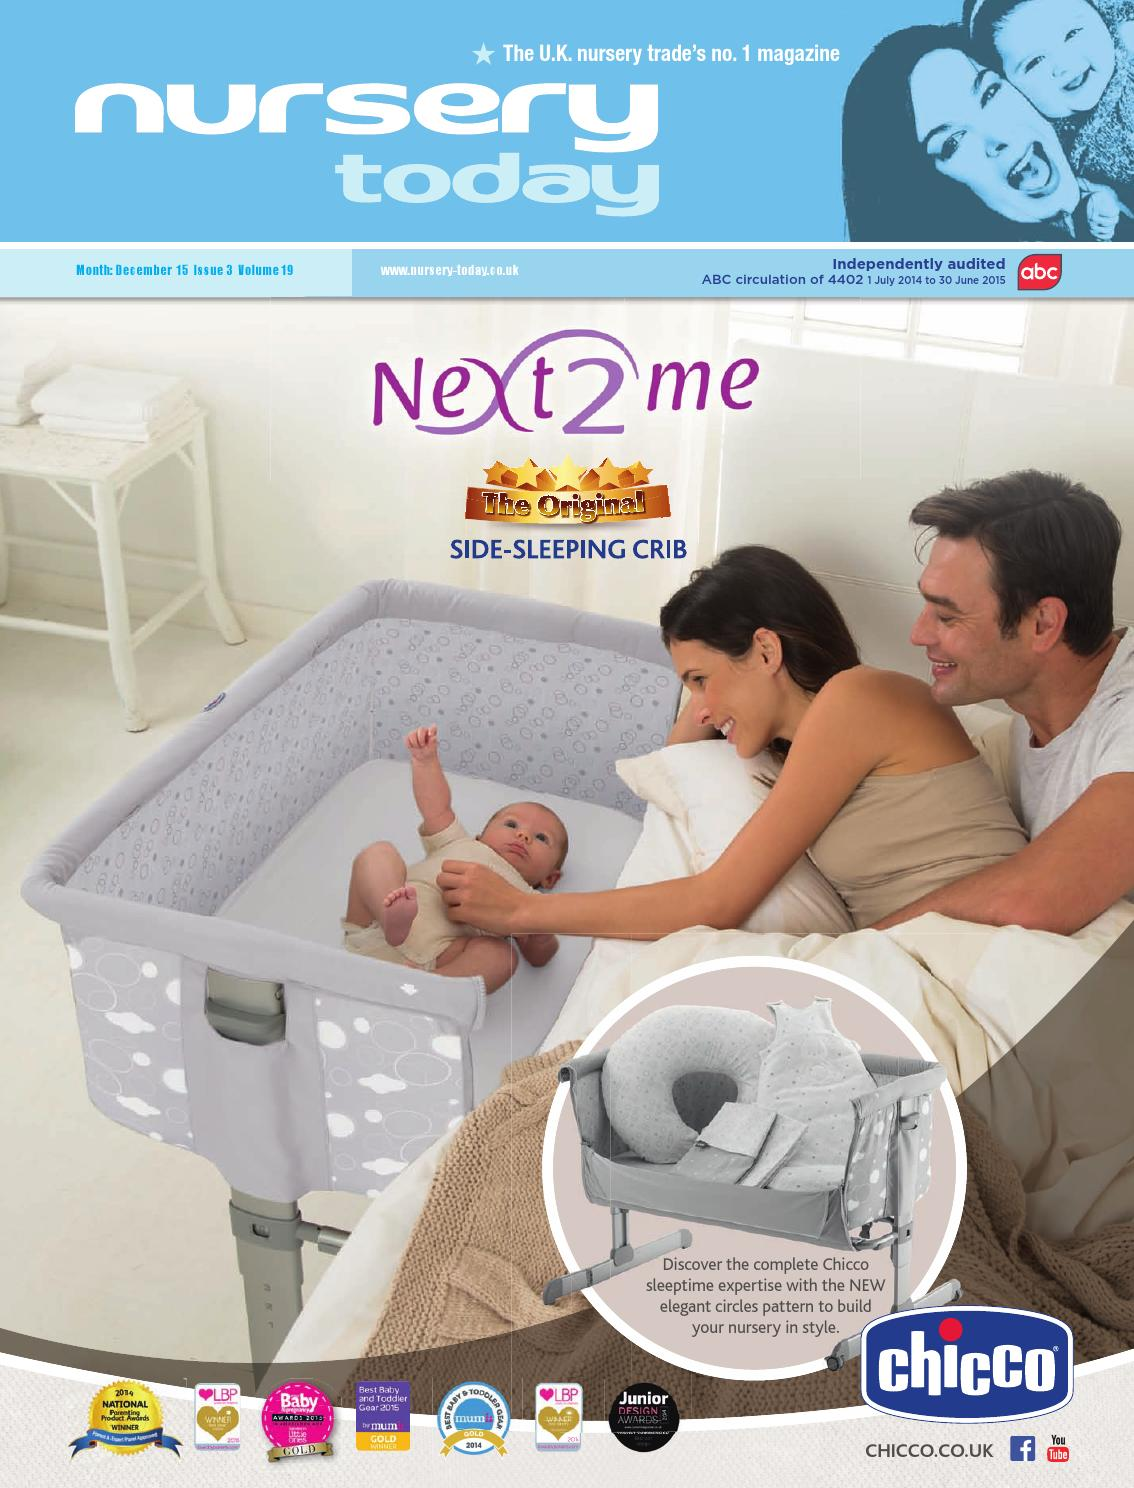 Nursery Today By Lema Publishing Issuu Buy 2 Get 20 Chicco Baby Moments Bath Foam Soft Cup